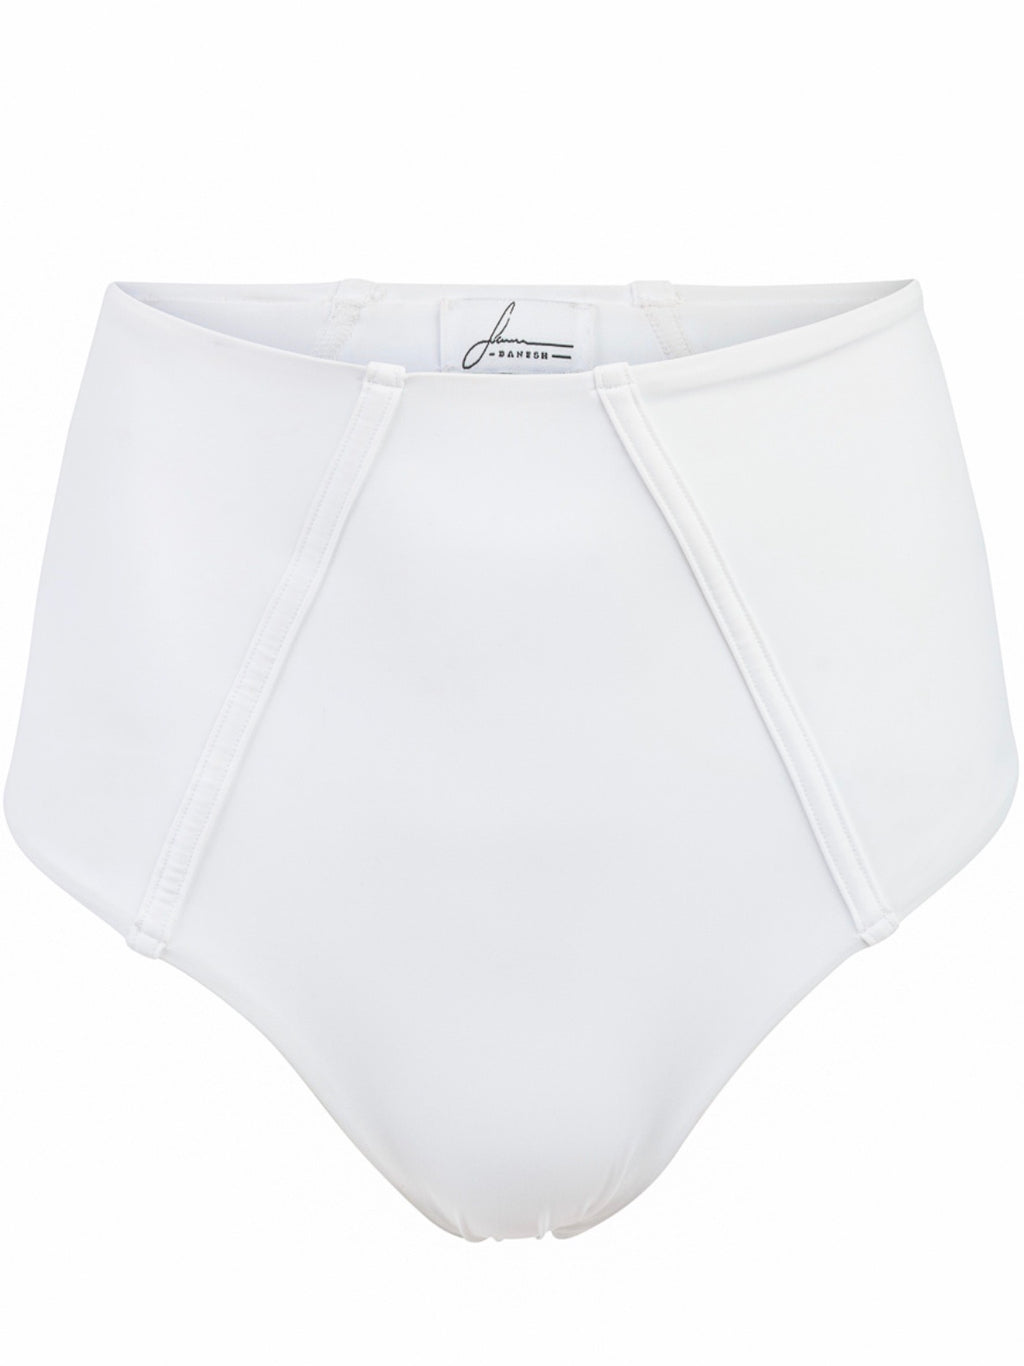 The allure bikini briefs - Annie's Ibiza